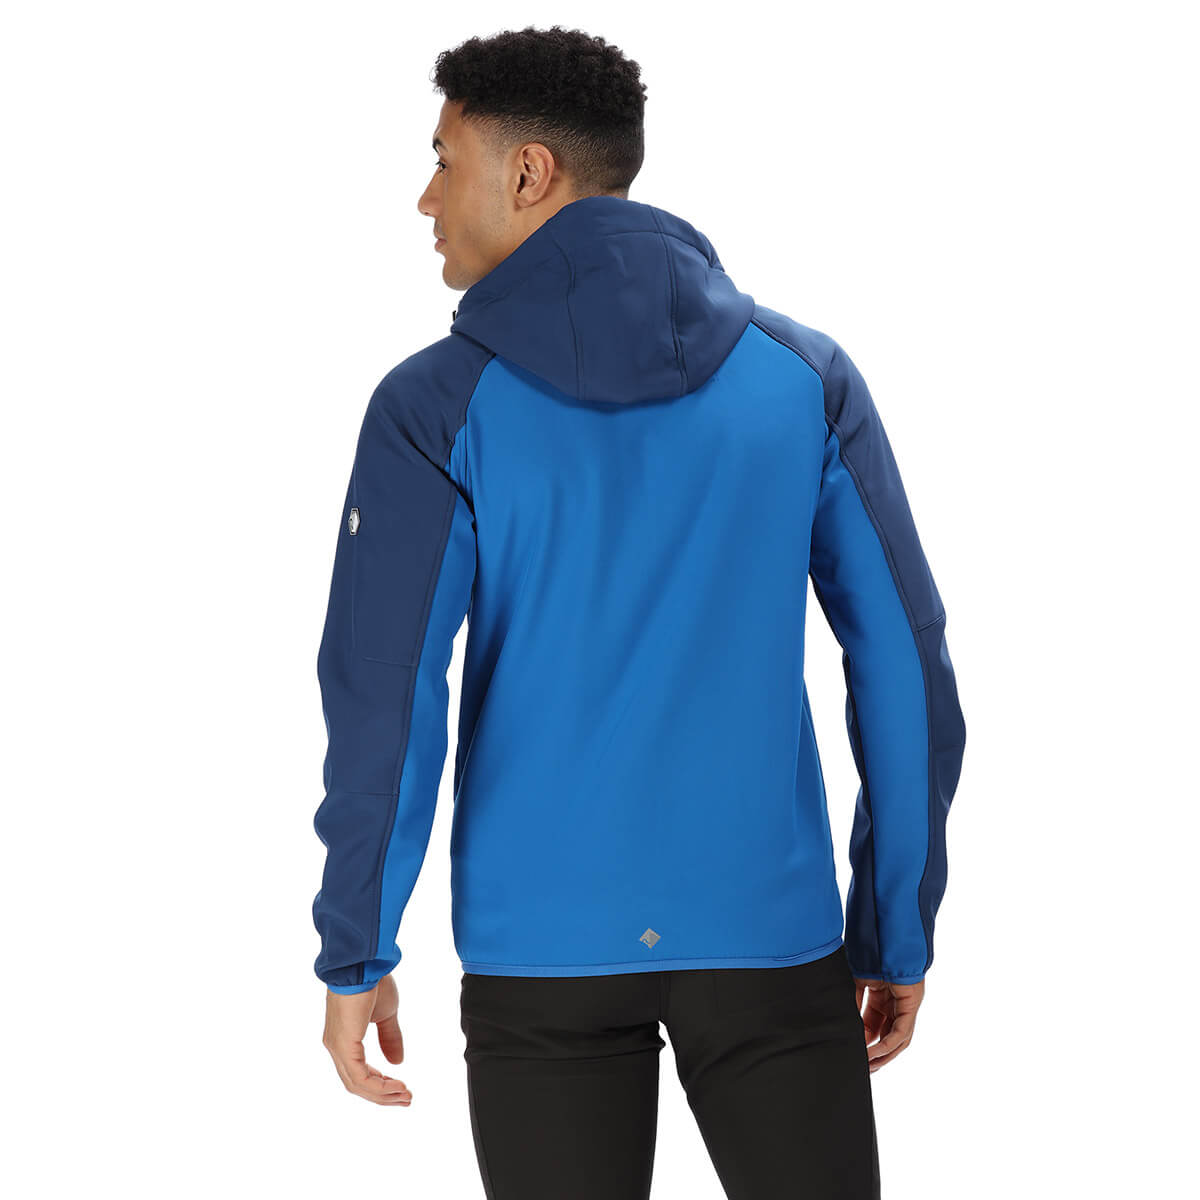 Regatta-Mens-Arec-II-Softshell-Waterproof-Stretch-Hooded-Jacket-68-OFF-RRP thumbnail 26